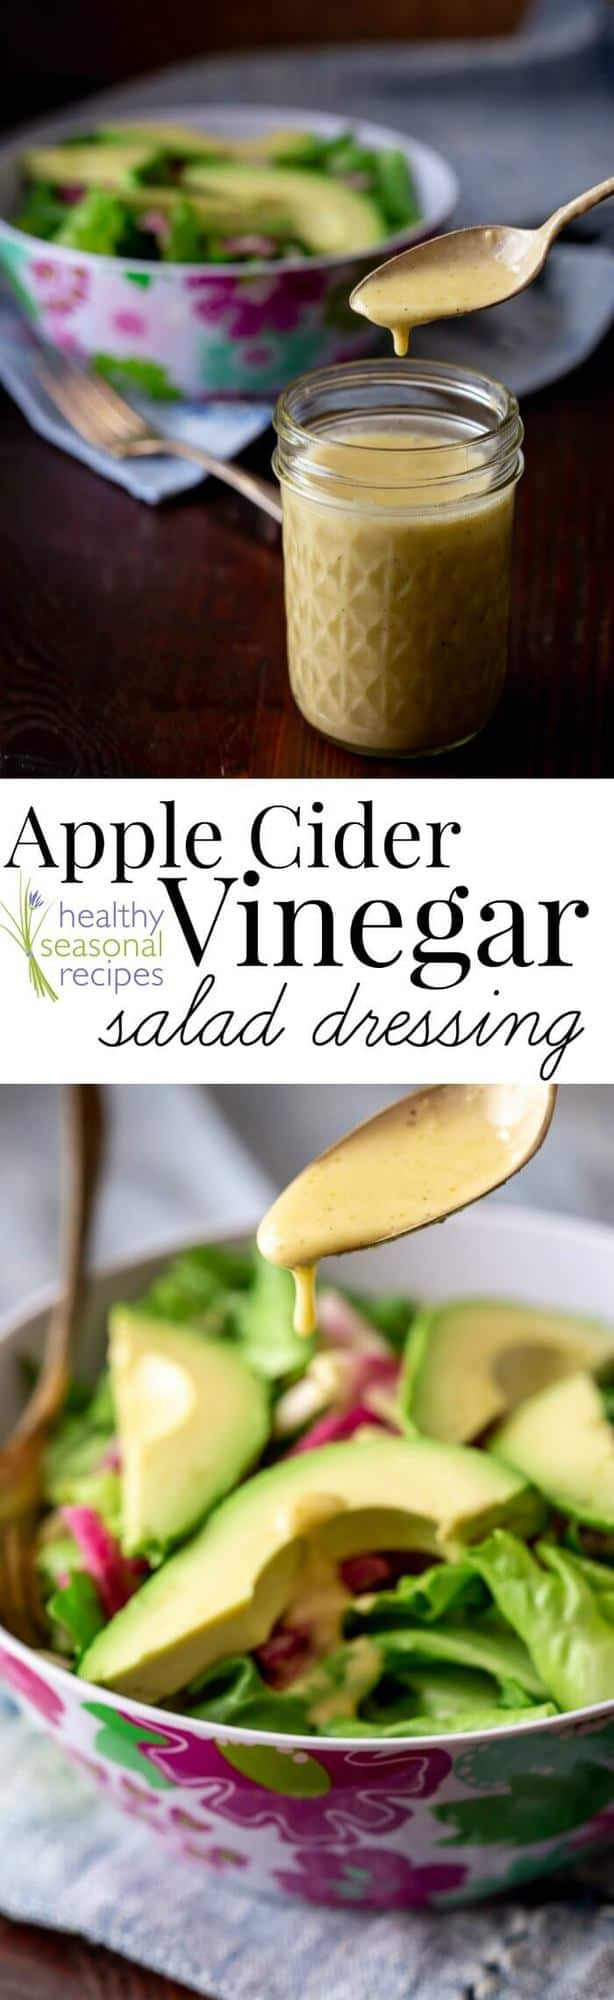 Here is how to make homemade salad dressing with apple cider vinegar! It is so easy (5 minutes!) and it is a healthy alternative to bottled dressings and vinaigrettes with emulsifiers, preservatives and additives. Plus the 7 components needed to make your own recipe for salad dressing from scratch! #healthyseasonal #acv #applecidervinegar #saladdressing #glutenfree #healthyrecipe #vinaigrette #bestdressing #functionalfood